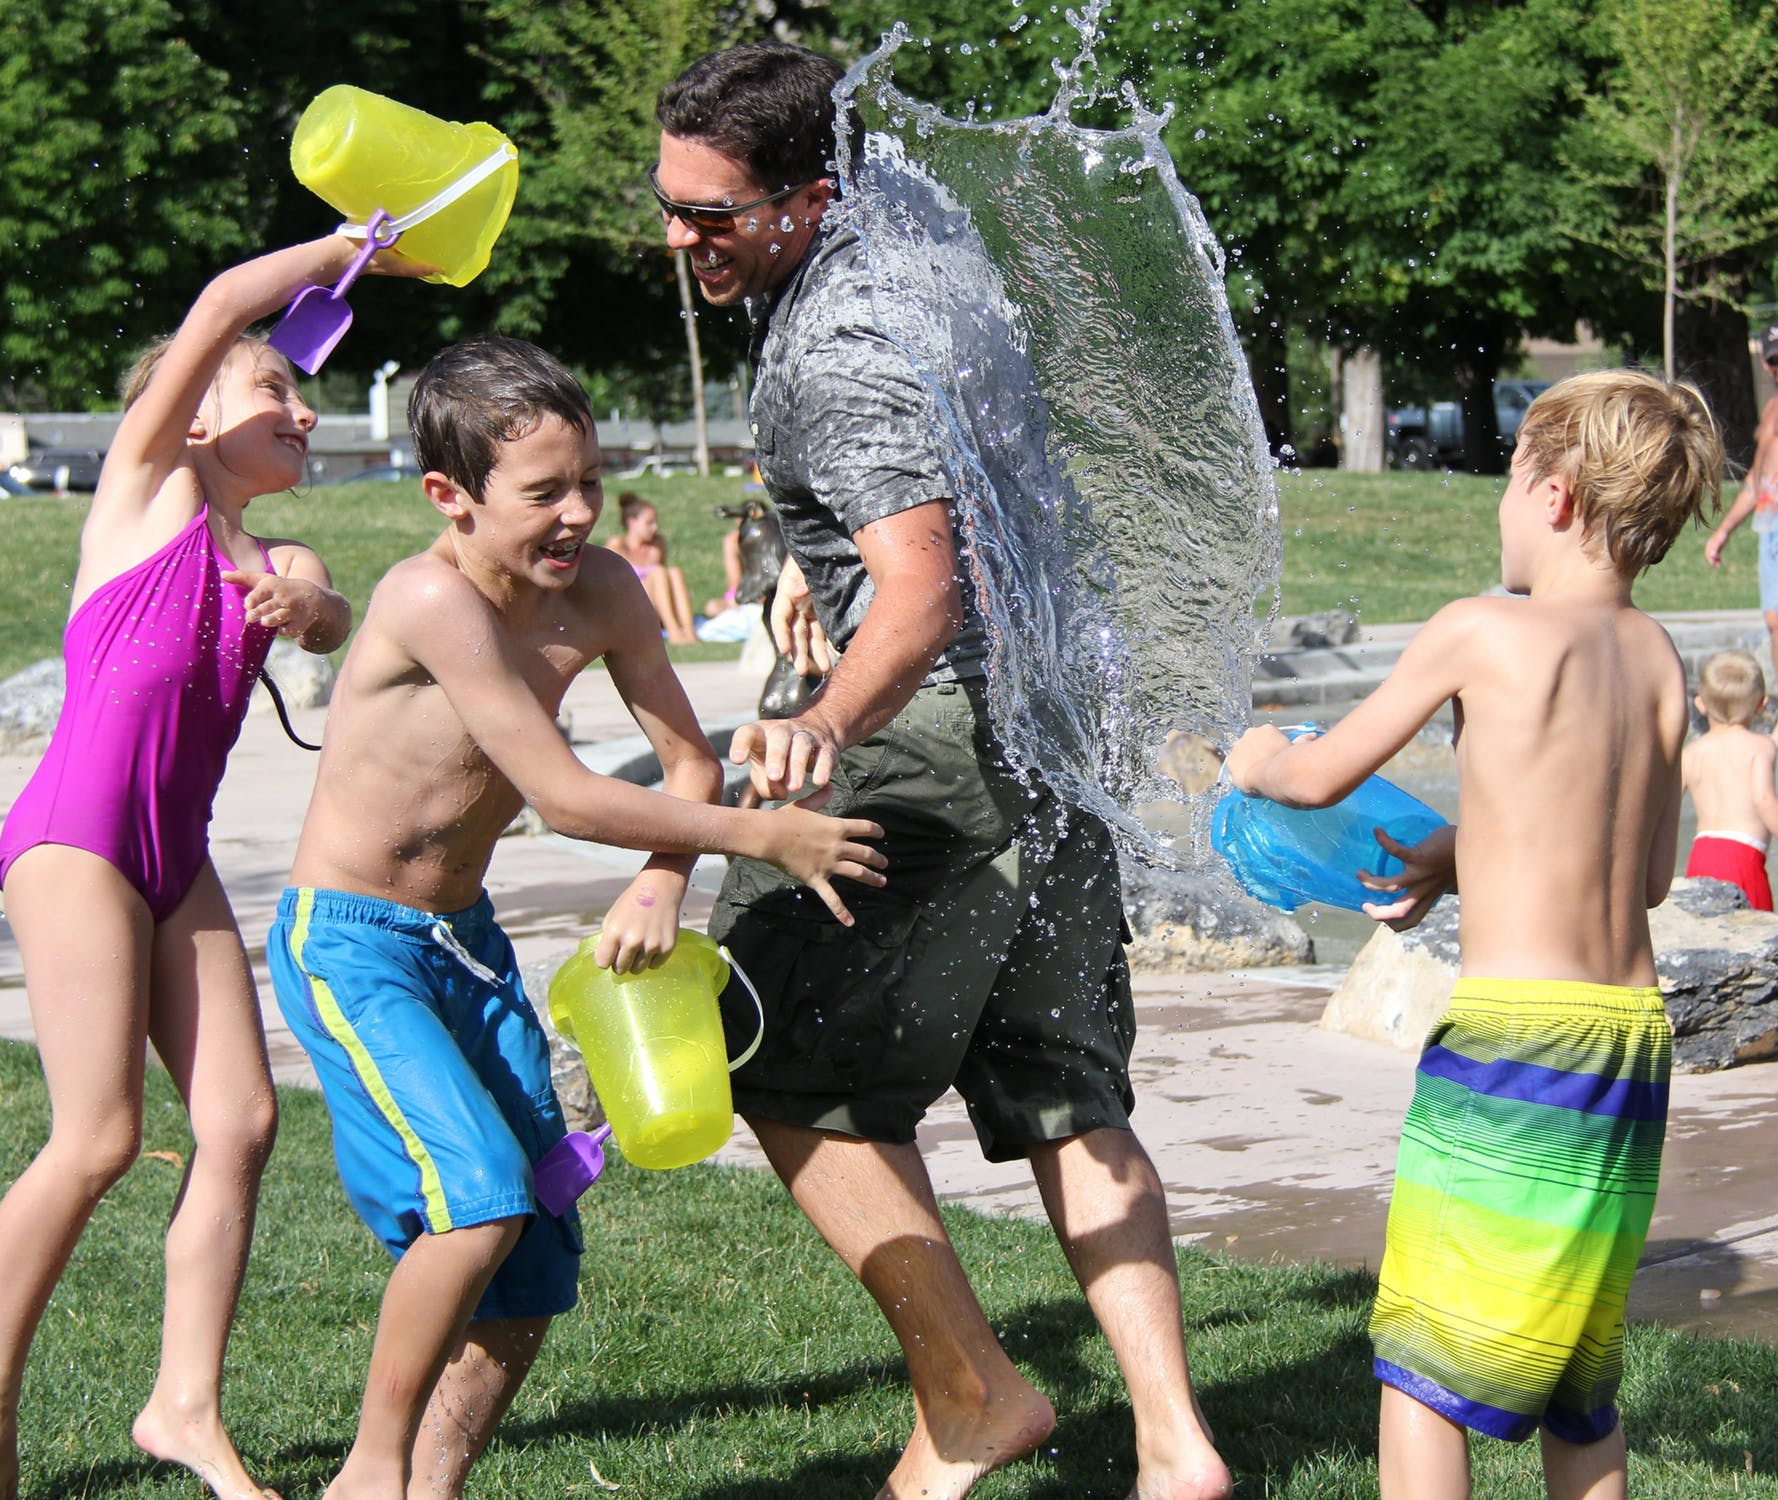 A Few Ways to Stay Safer During Summer Vacation